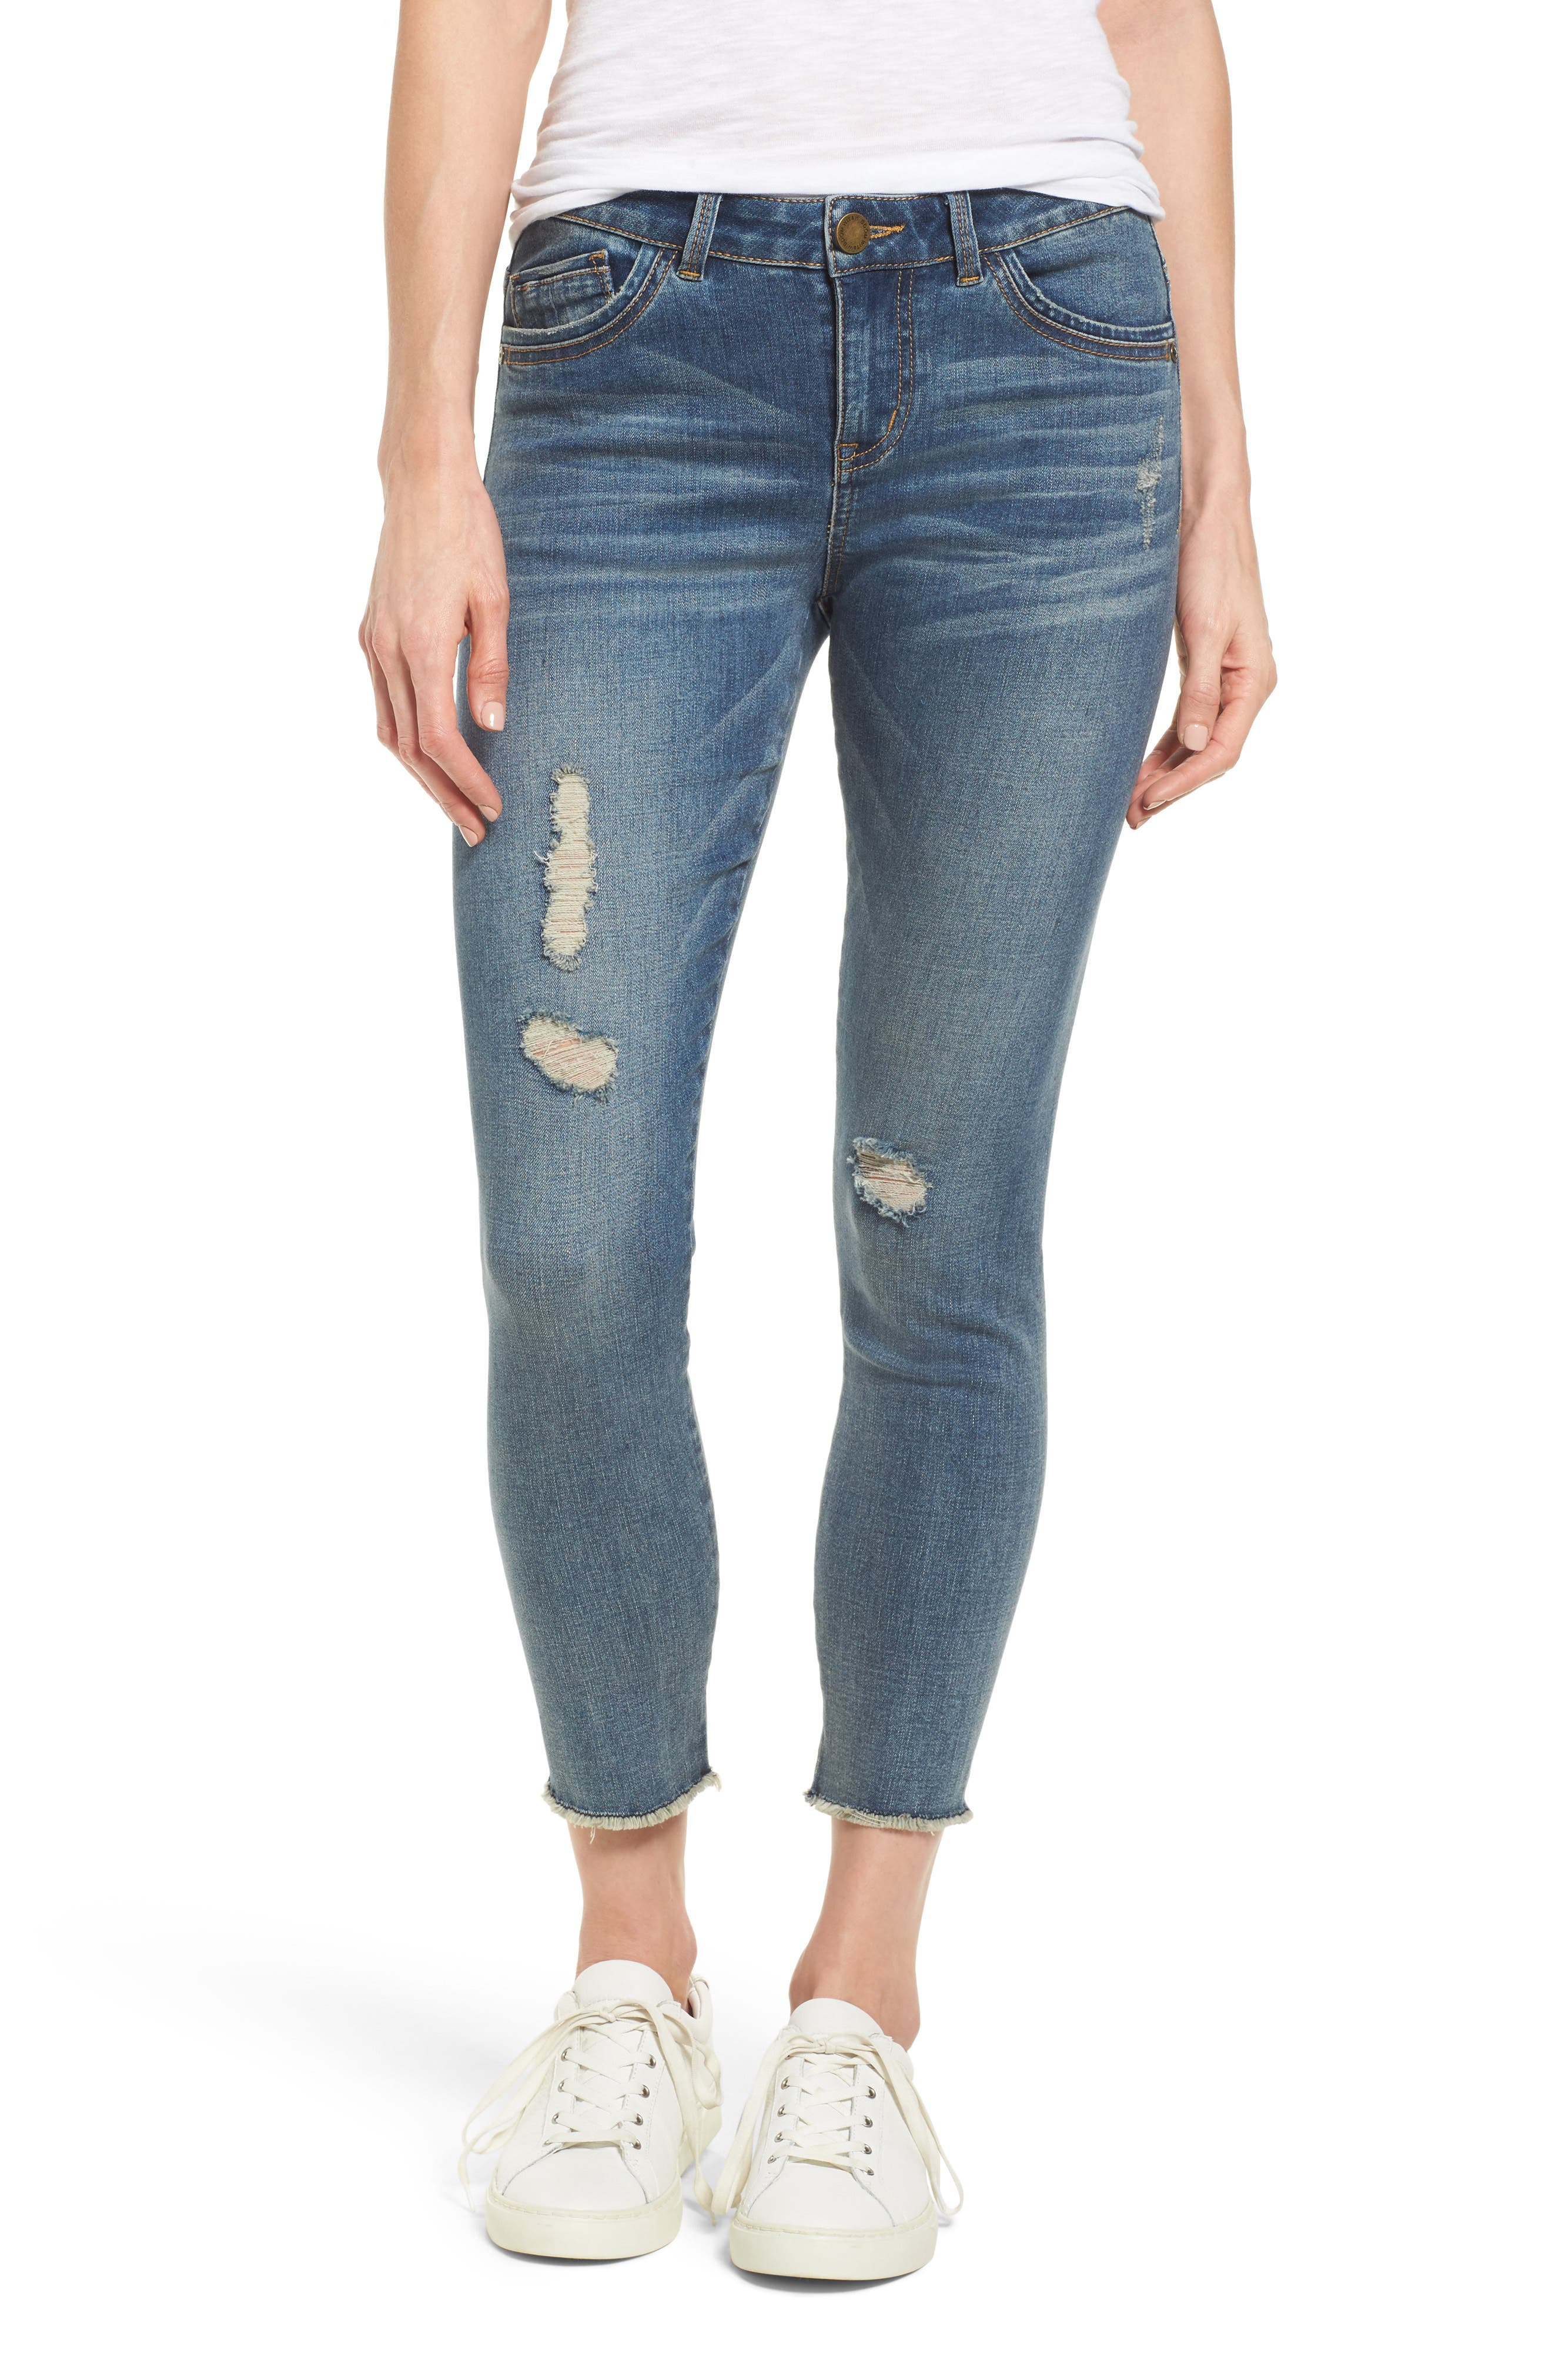 Wit & Wisdom Ripped Seamless Ankle Jeans (Nordstrom Exclusive) (Regular & Petite)